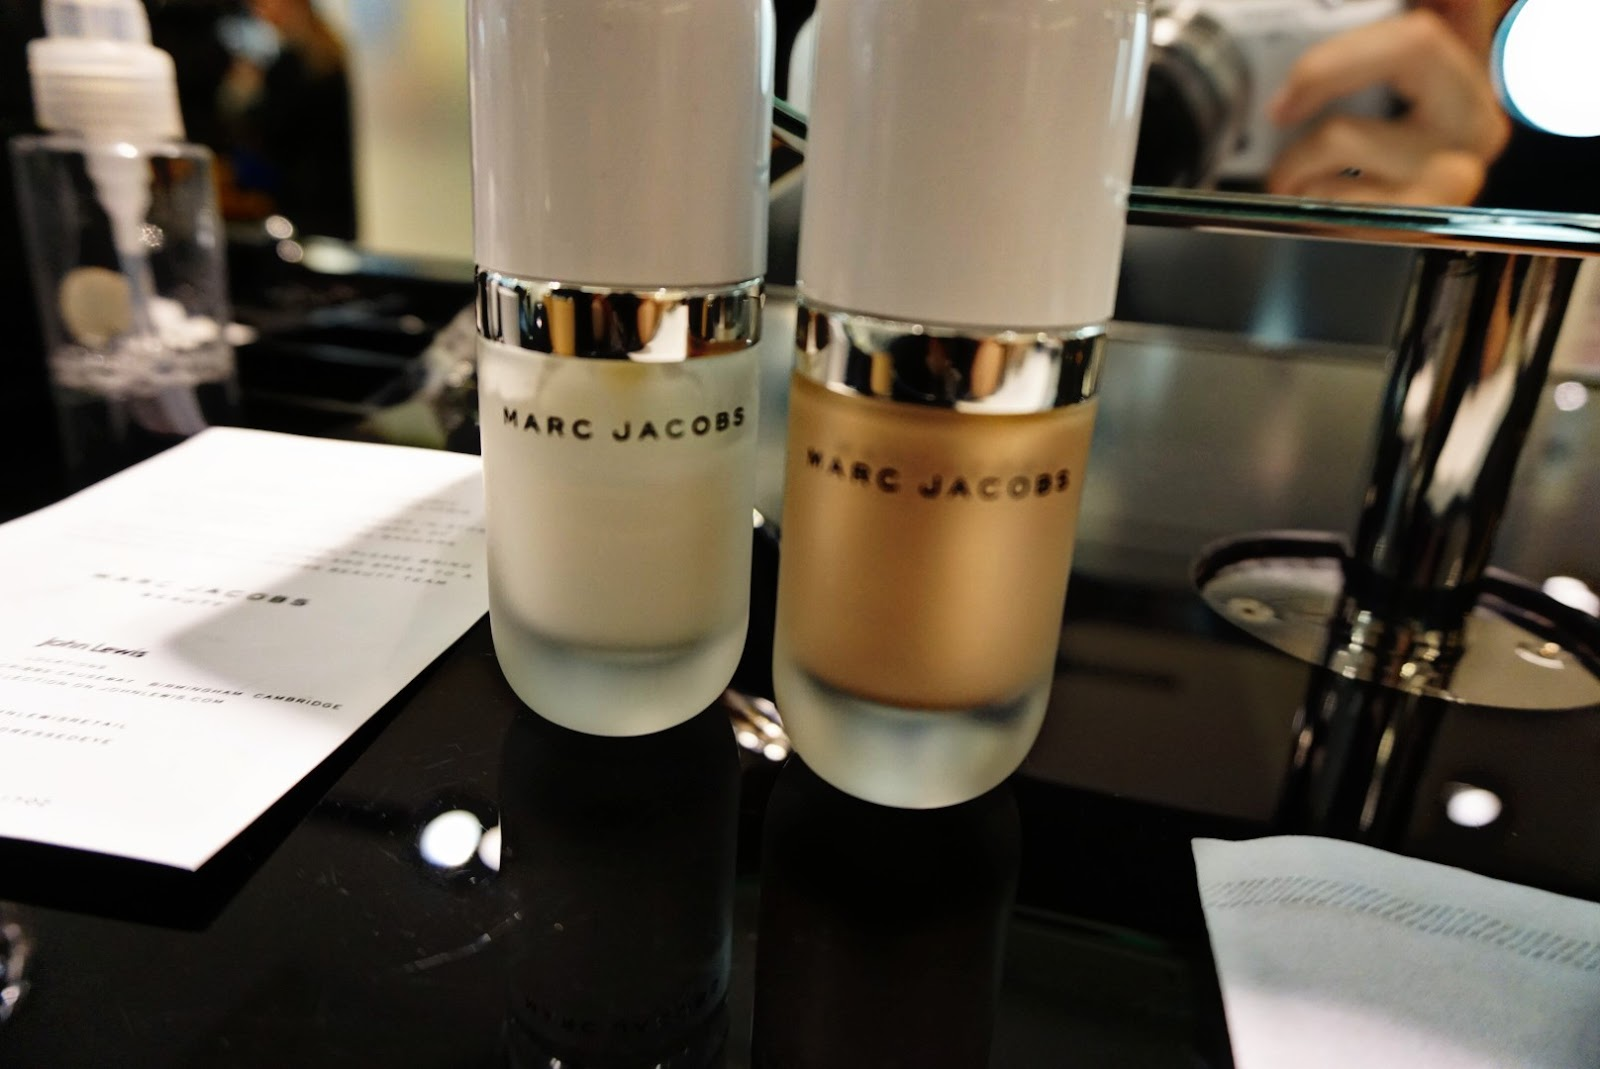 EXCLUSIVE MARC JACOBS BEAUTY MAKEOVER AT JOHN LEWIS COURTESY OF INFLUENSTER UK